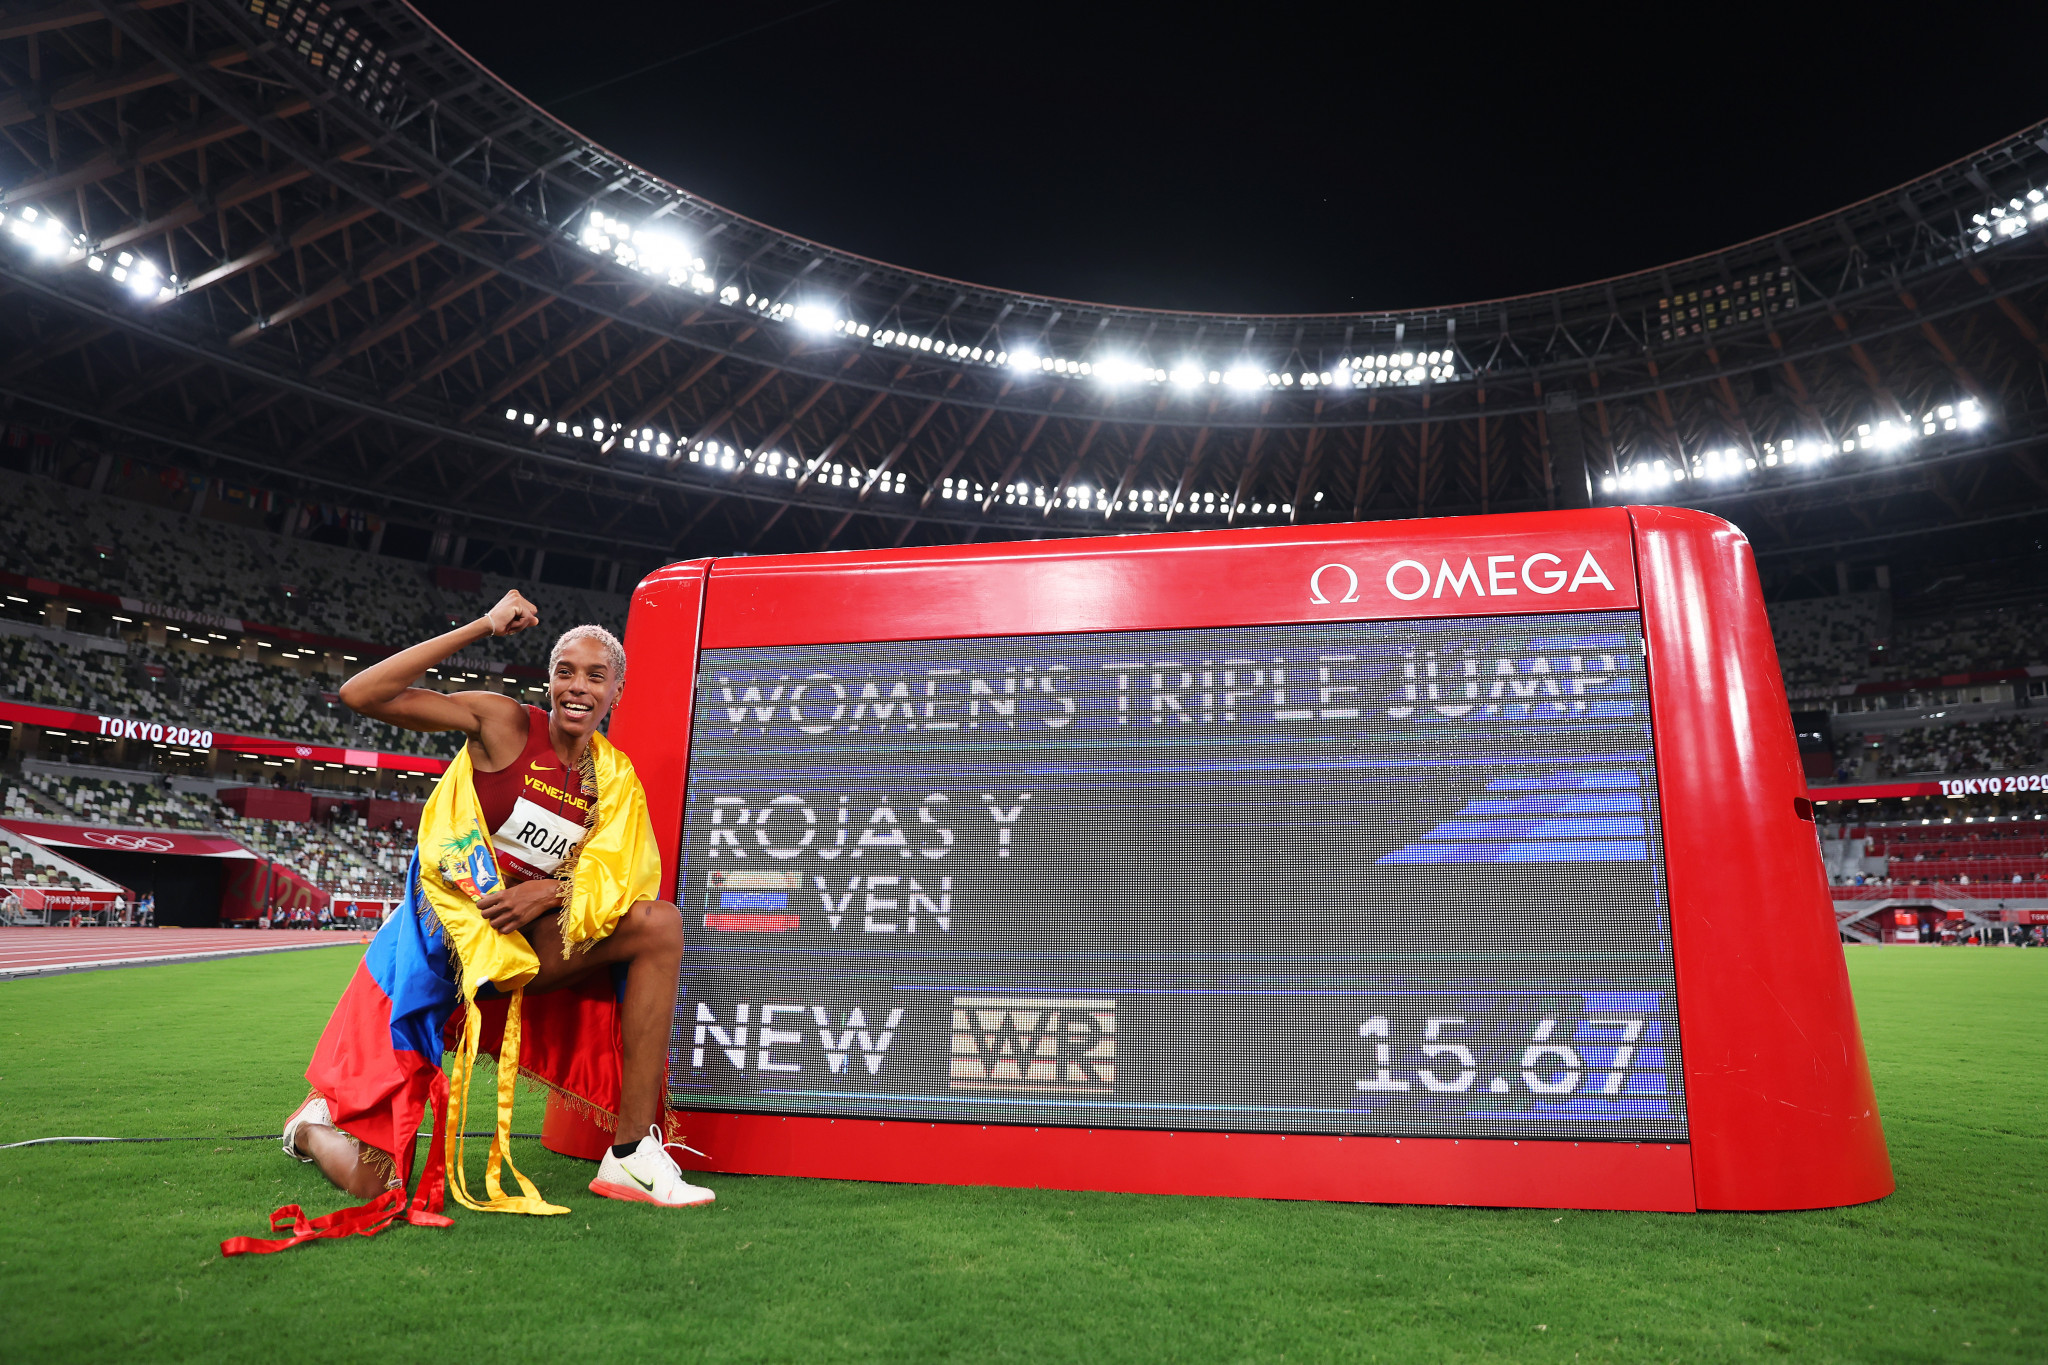 Yulimar Rojas earns Olympic triple jump gold with 15.67m world record